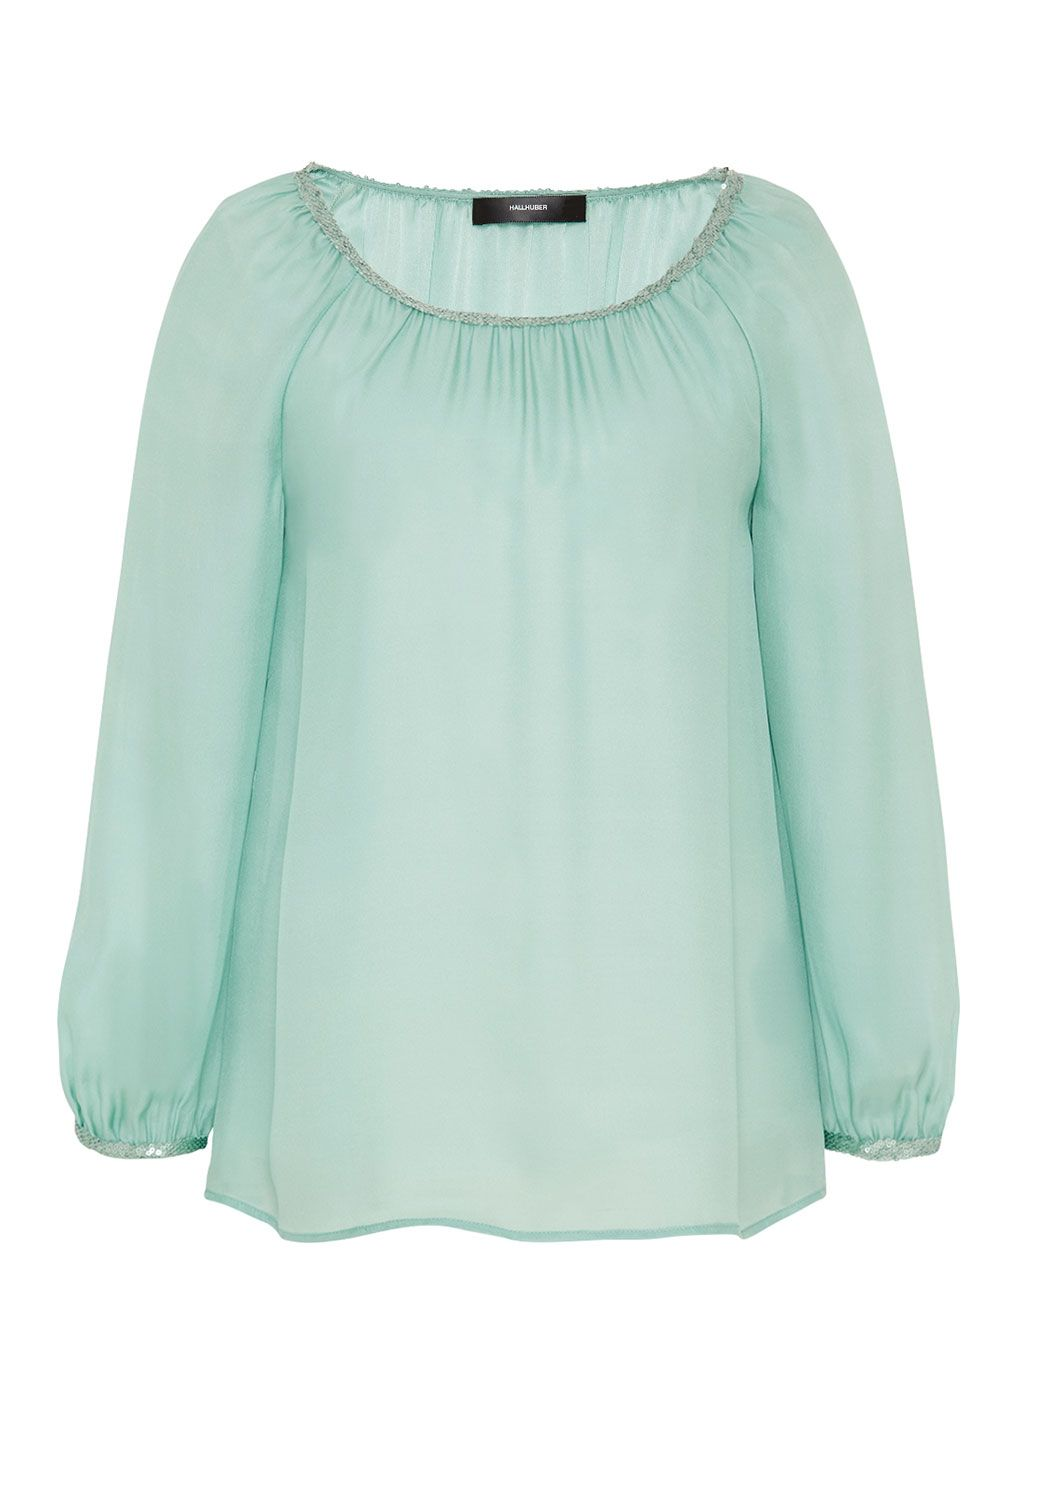 Hallhuber Silk blouse with sequin ribbons, Aqua